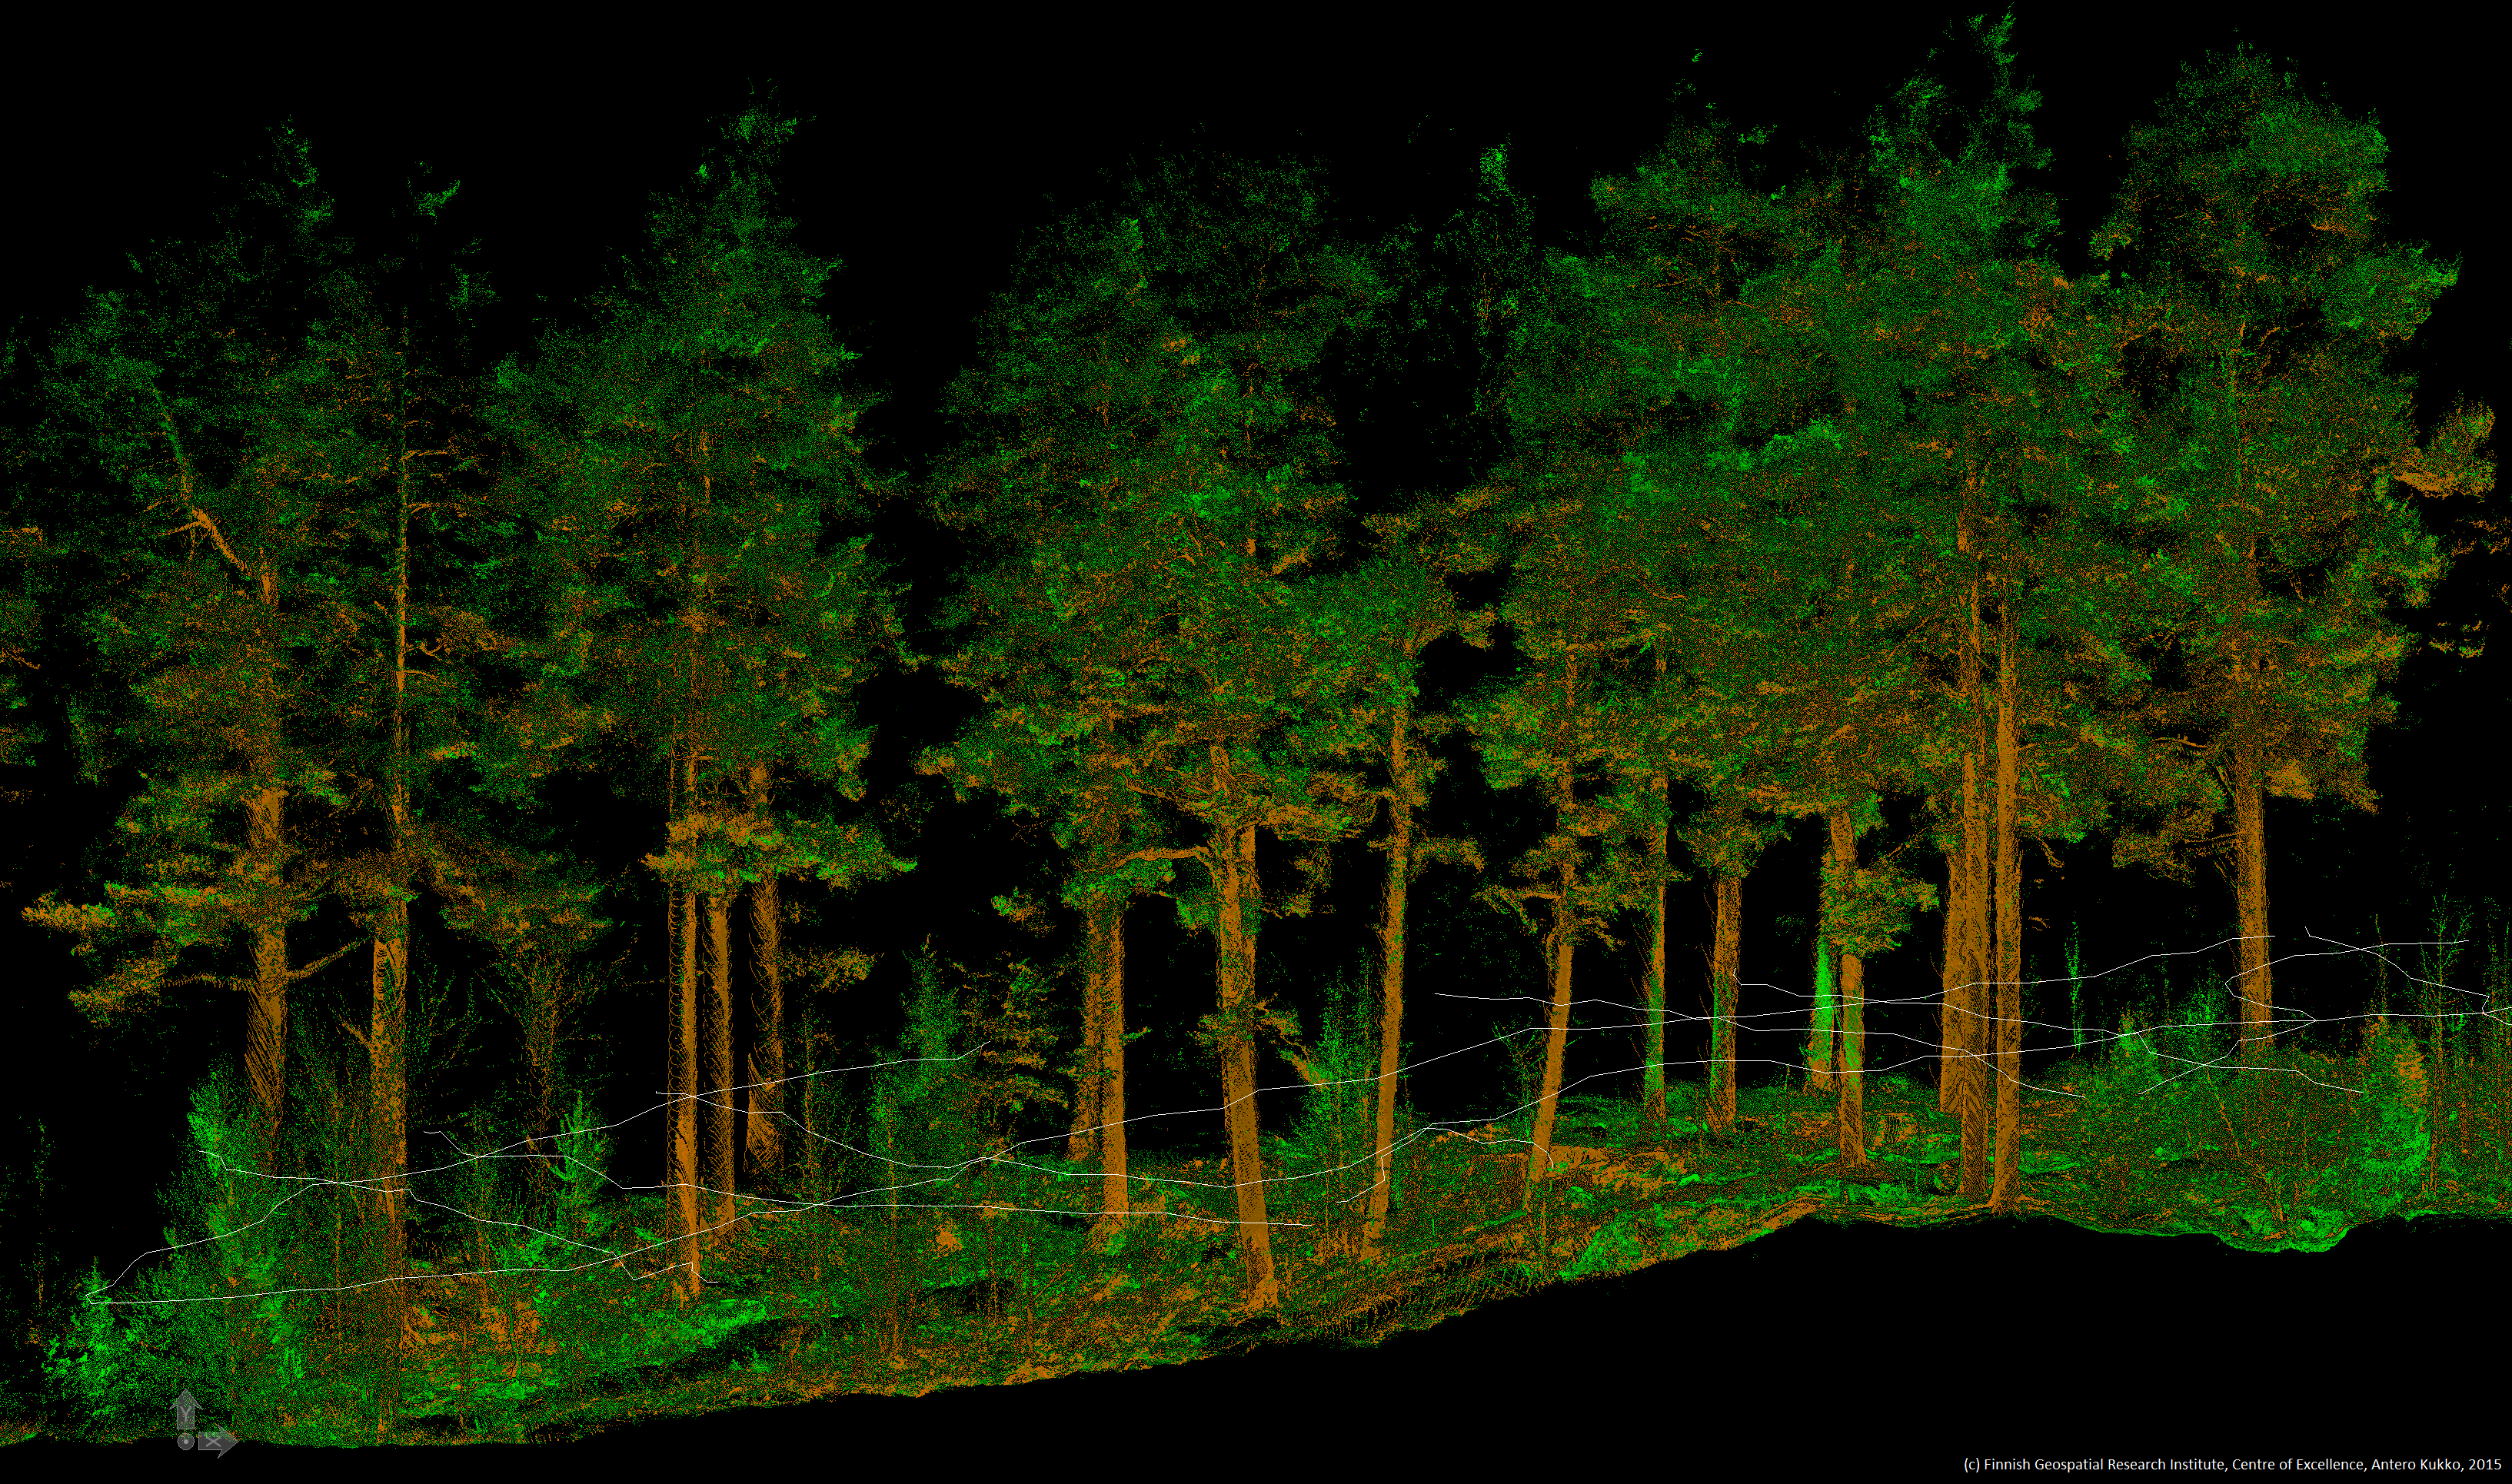 Forestry data collected with the Akhka R2X